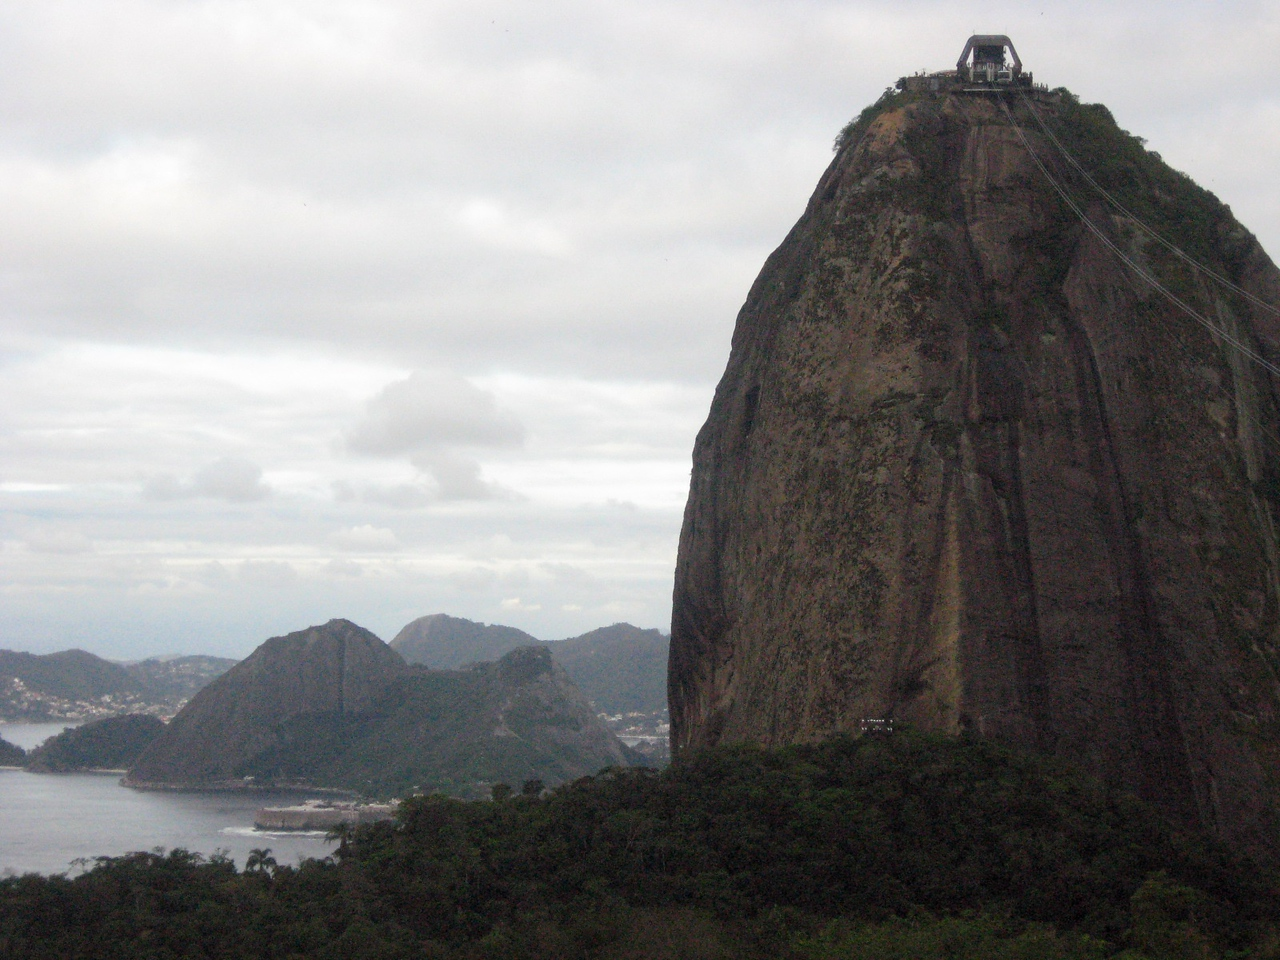 The summit of granite and quartz Sugar Loaf (Pao de Acucar) looms.